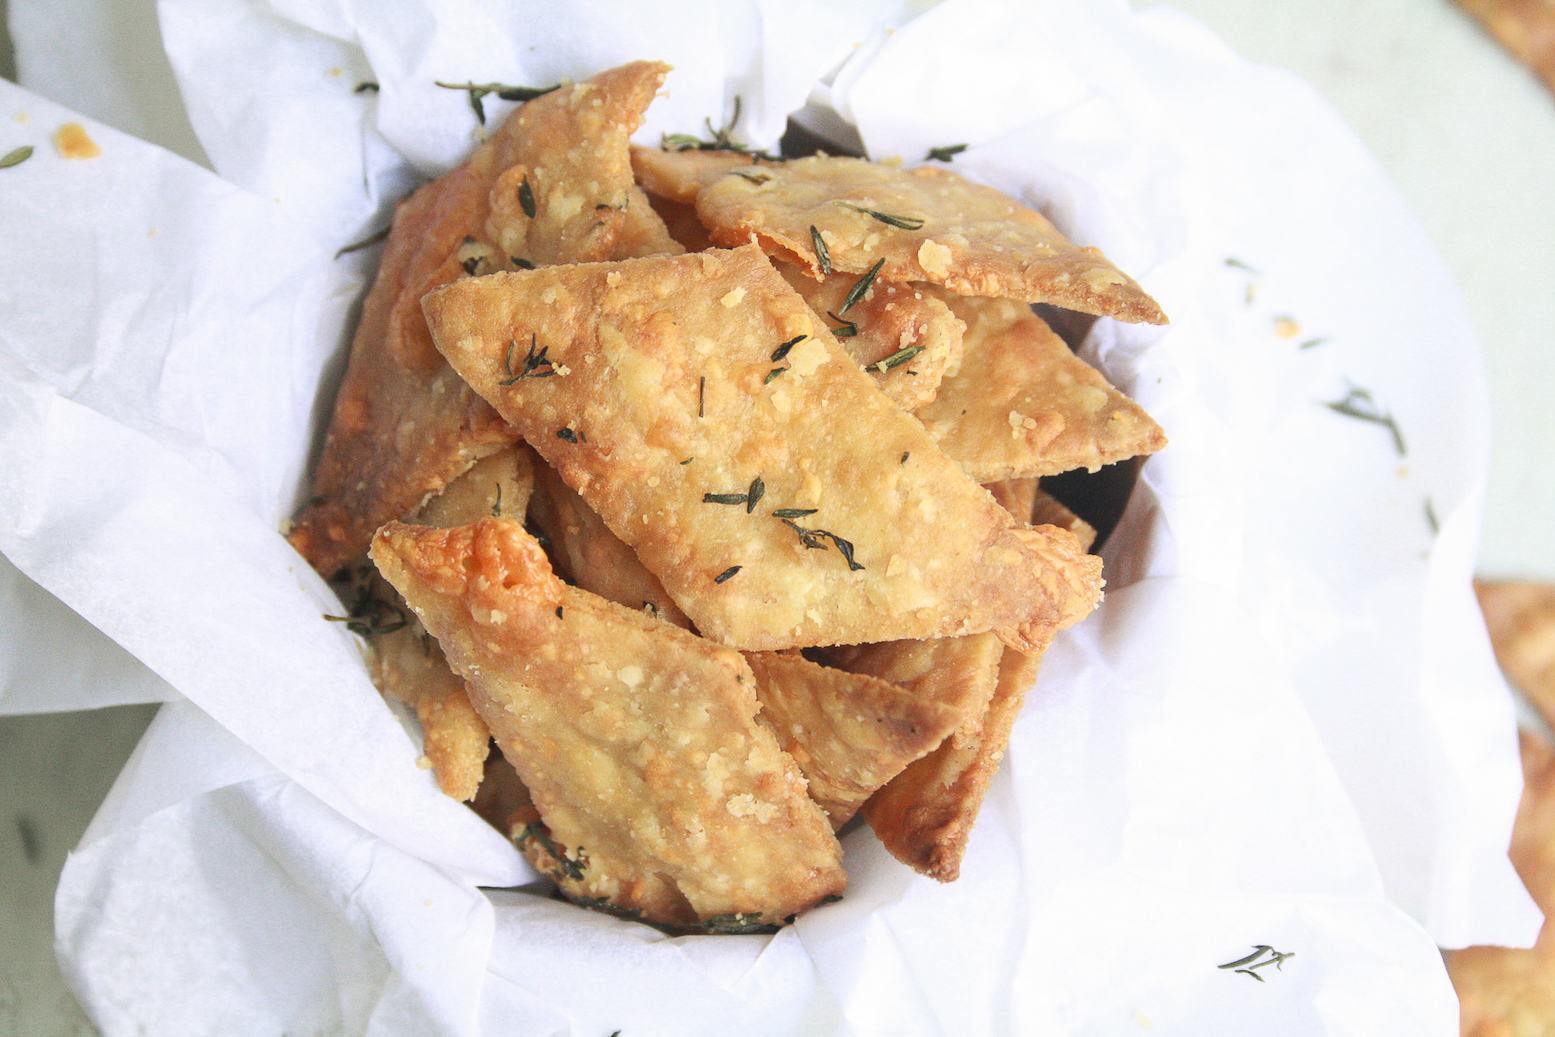 Crispy, baked crackers made with olive oil, wholewheat flour and filled with cheddar cheese and fresh thyme!